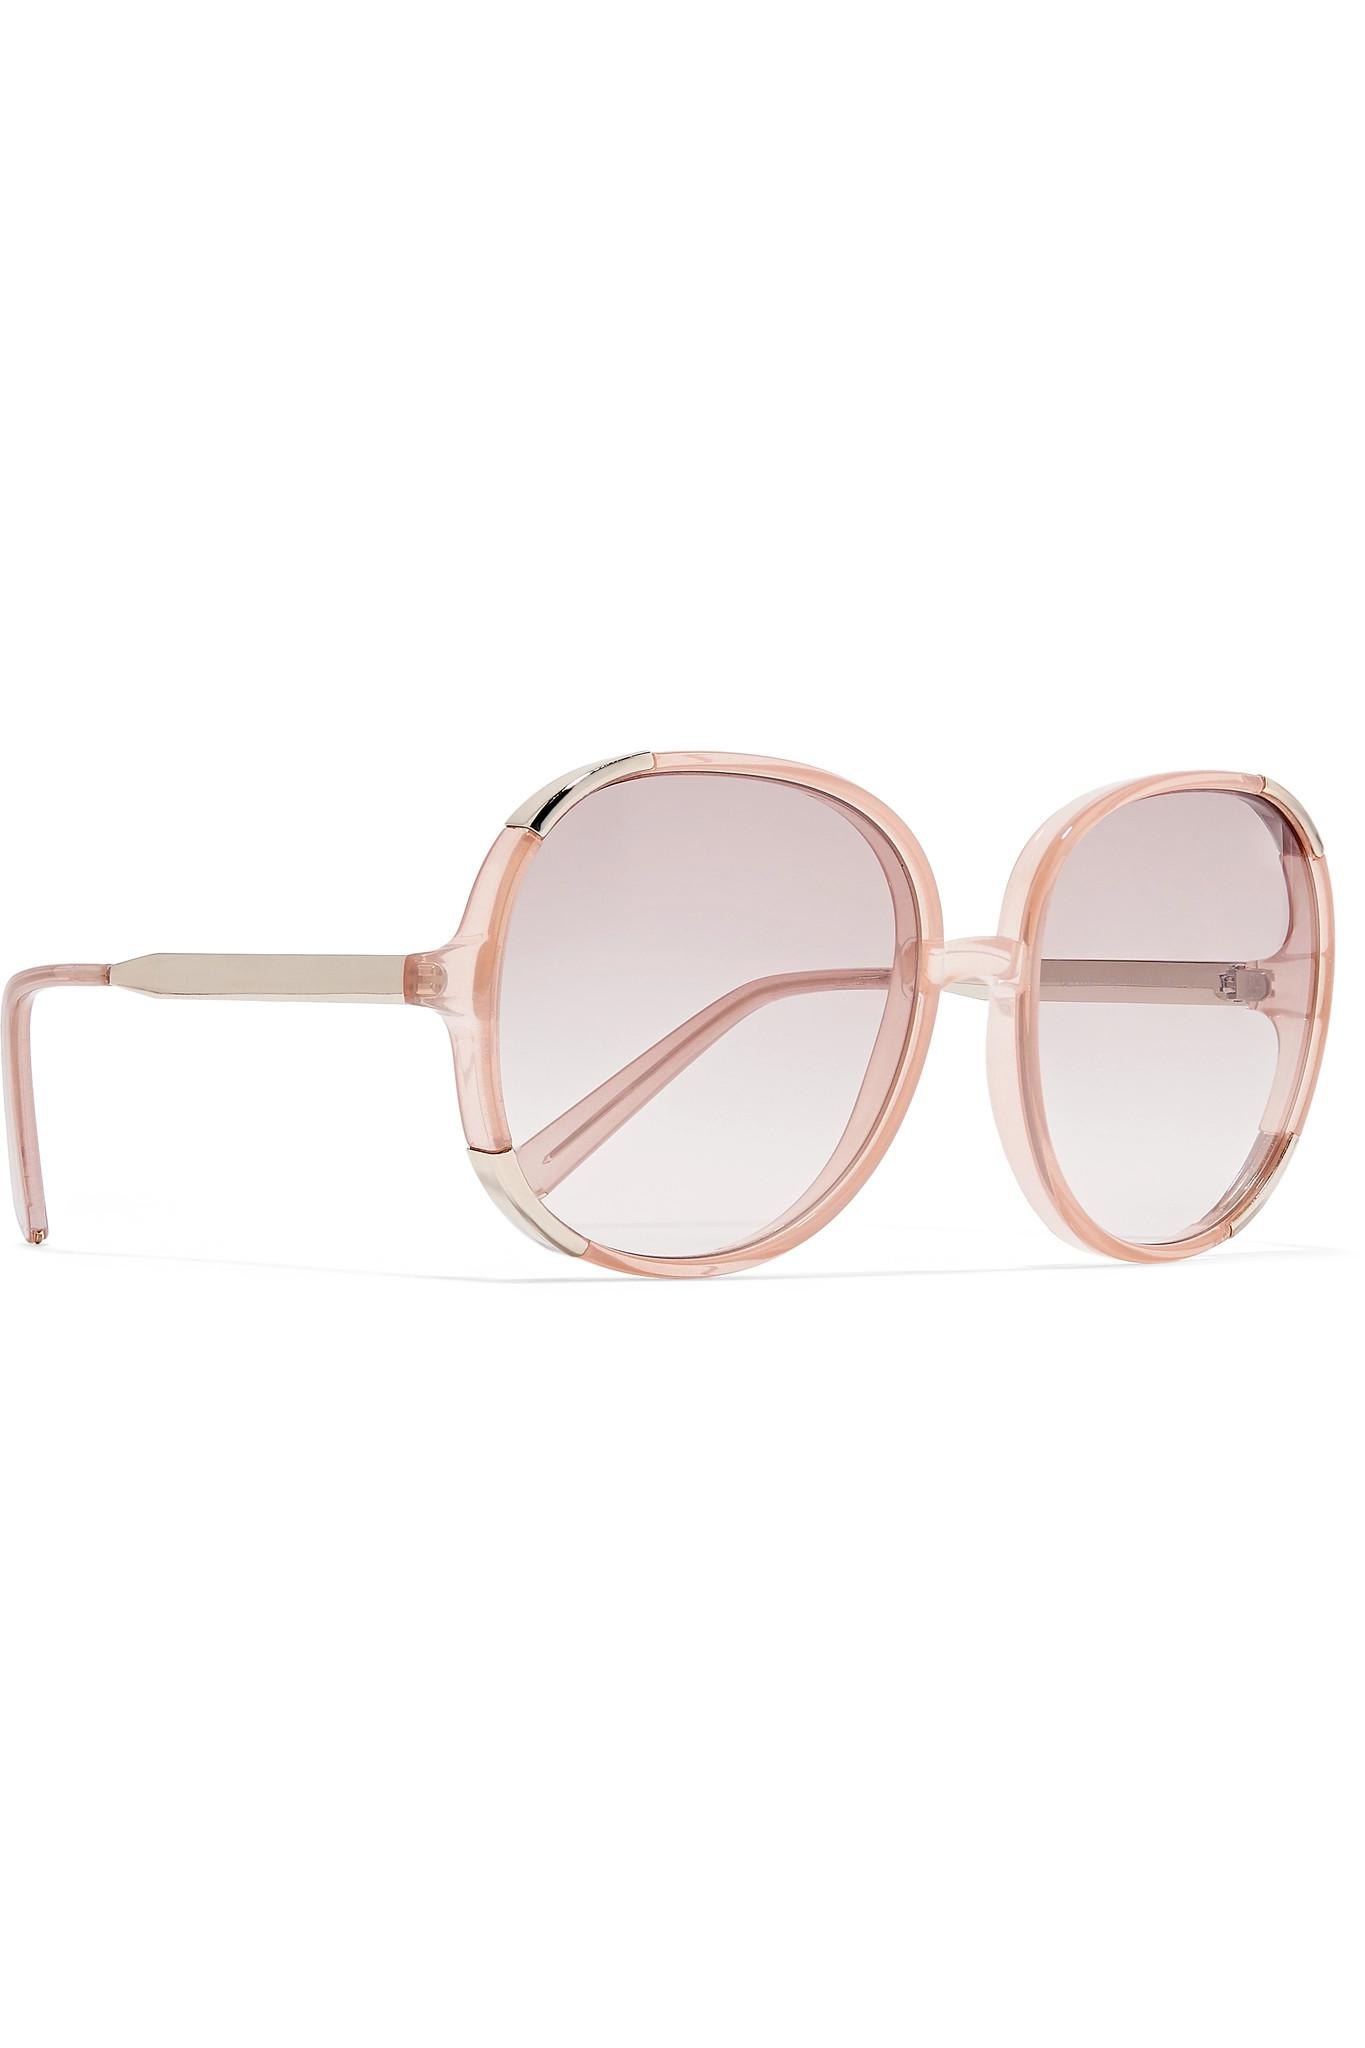 striped square frame sunglasses - Pink & Purple Chlo 0FWcUDNgG